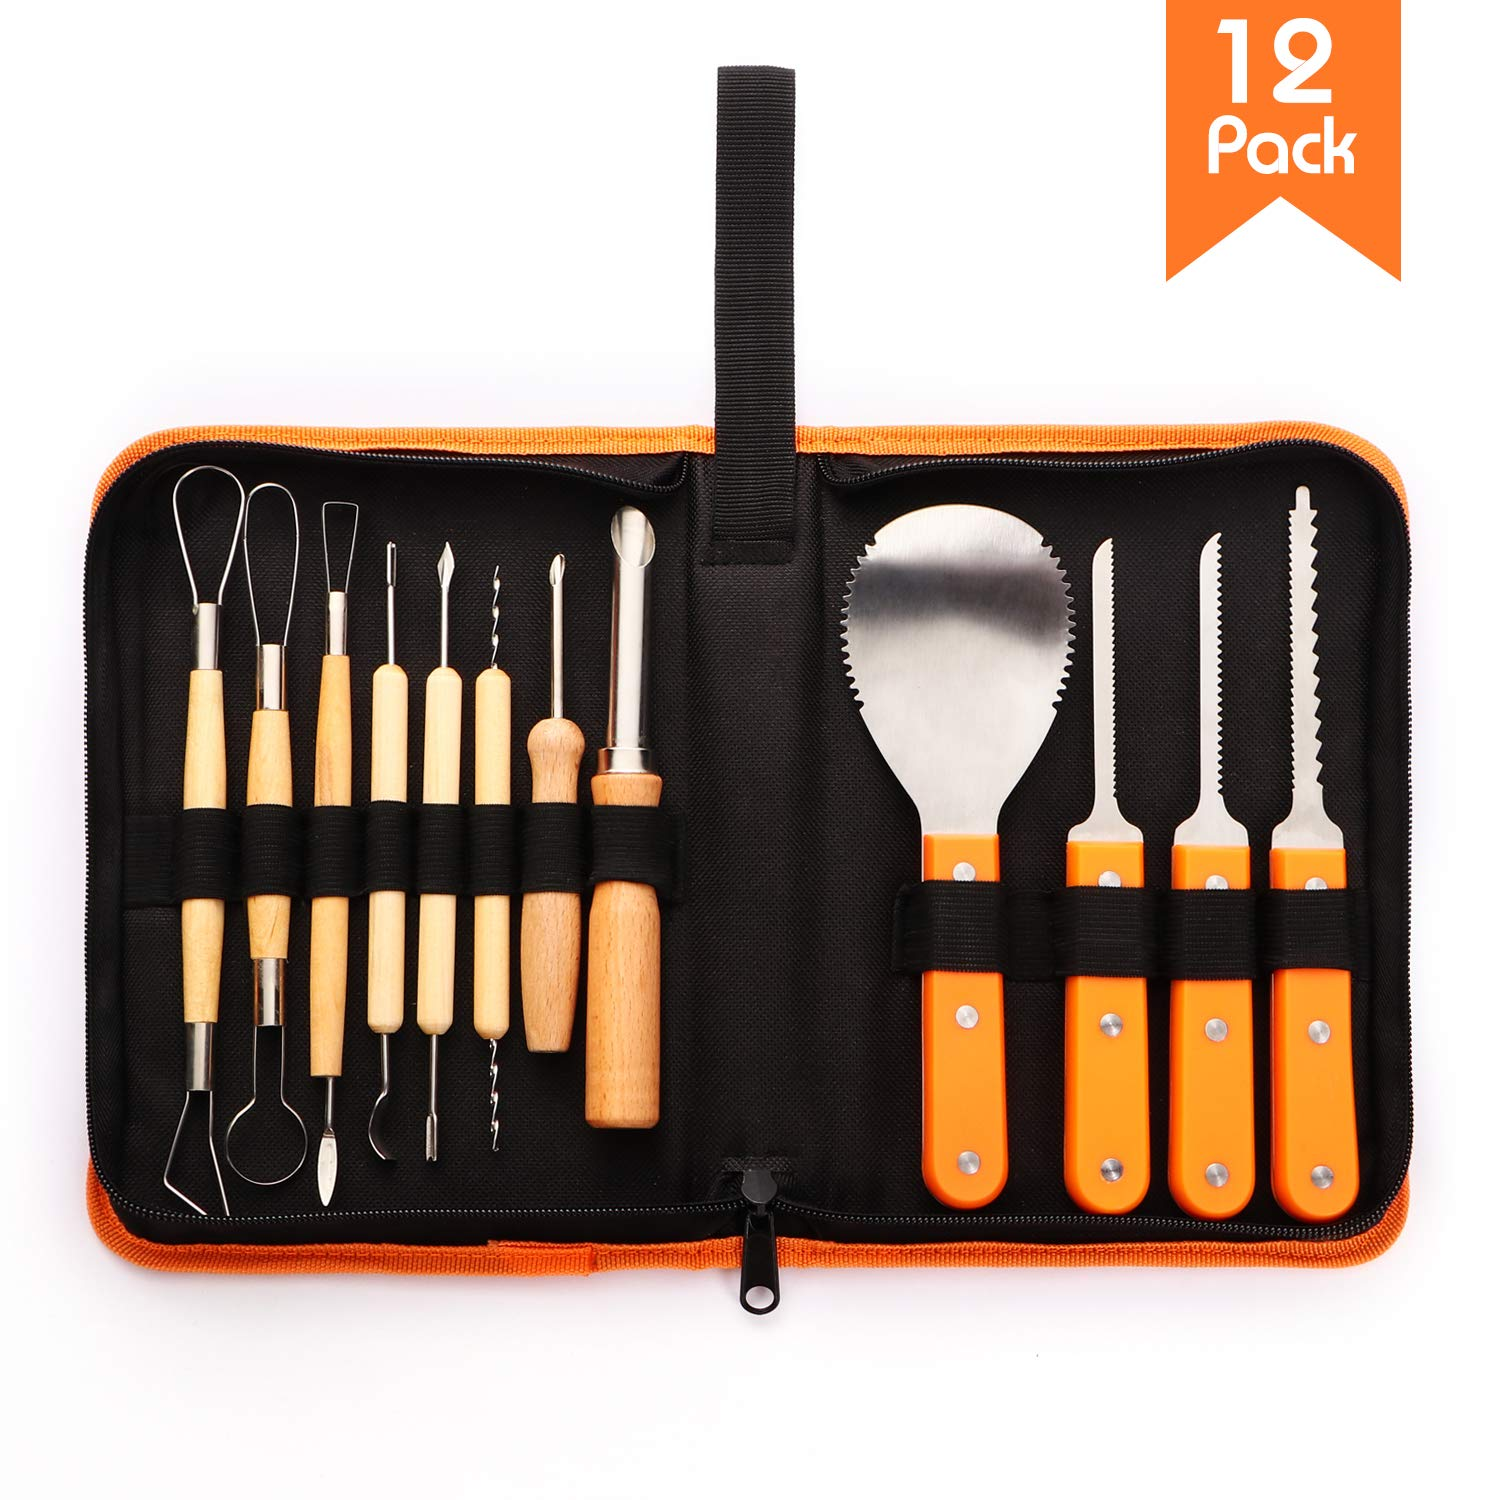 Halloween Professional 12 Piece Pumpkin Carving Tools Kit-Comfortable Wooden Handle Combined with Stainless Steel Head-Easily Carve Sculpt Halloween Jack-O-Lanterns-with Storage Box